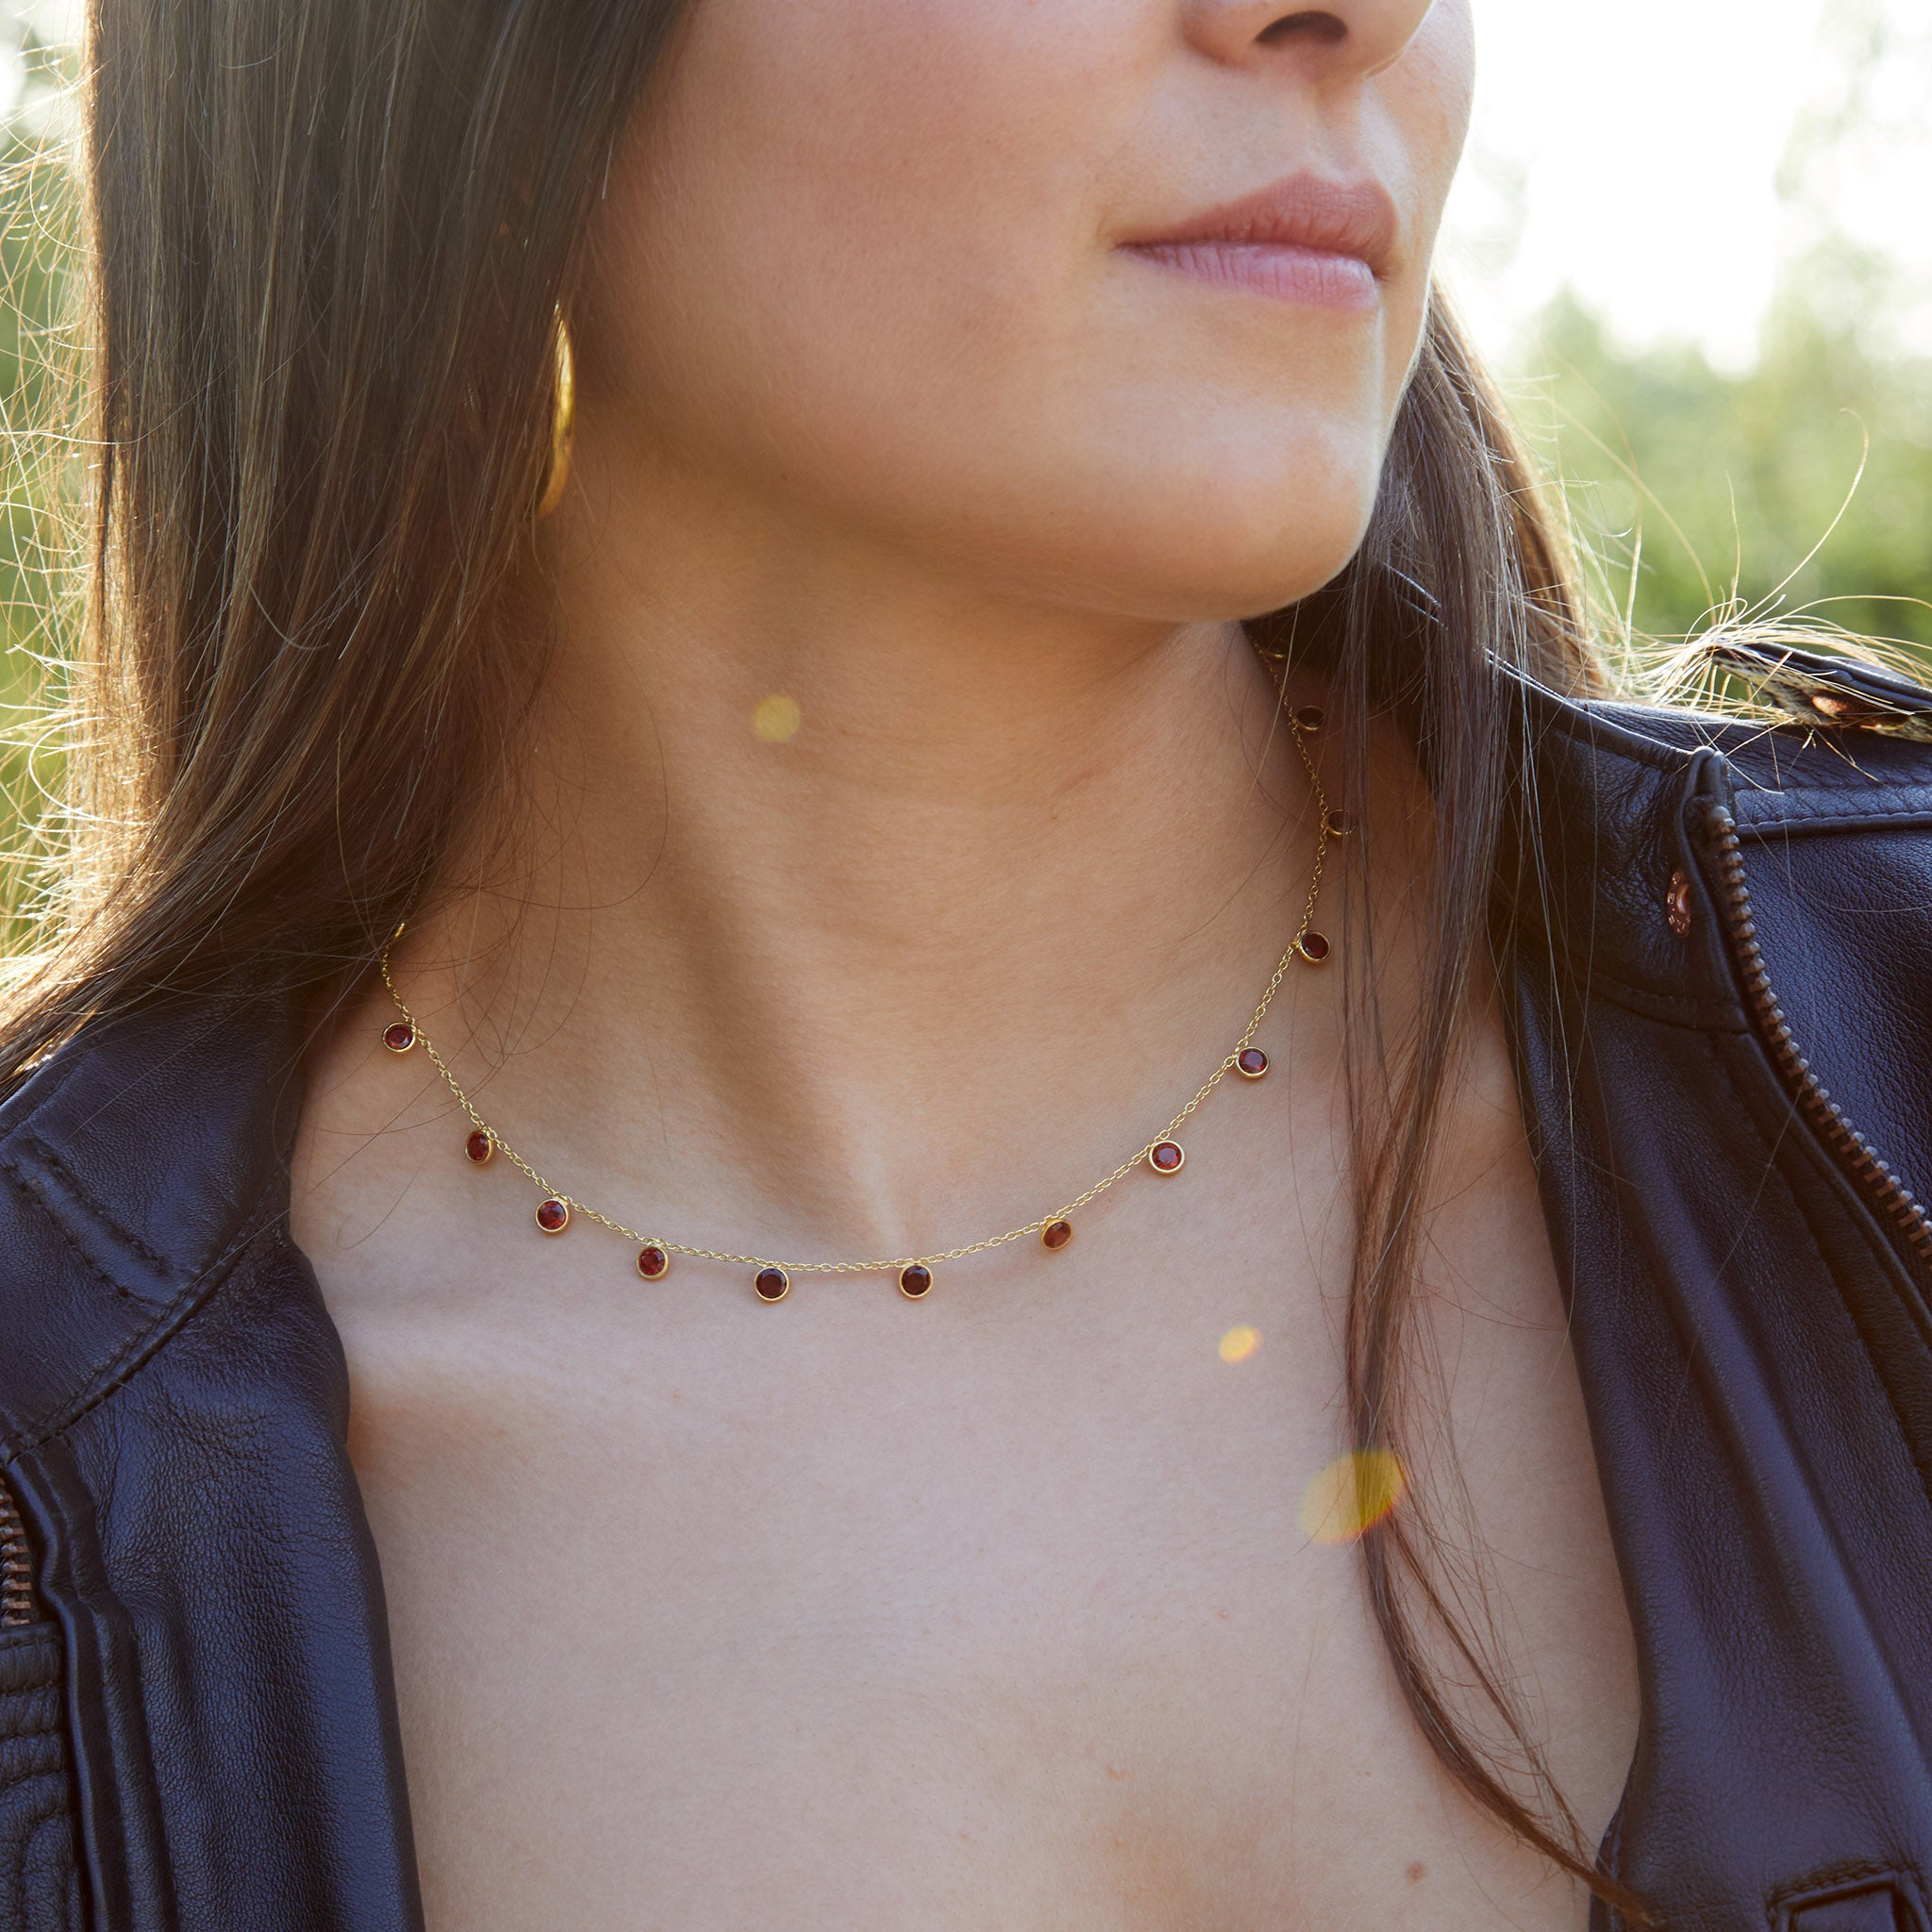 Zaza Necklace in Gold with Garnet